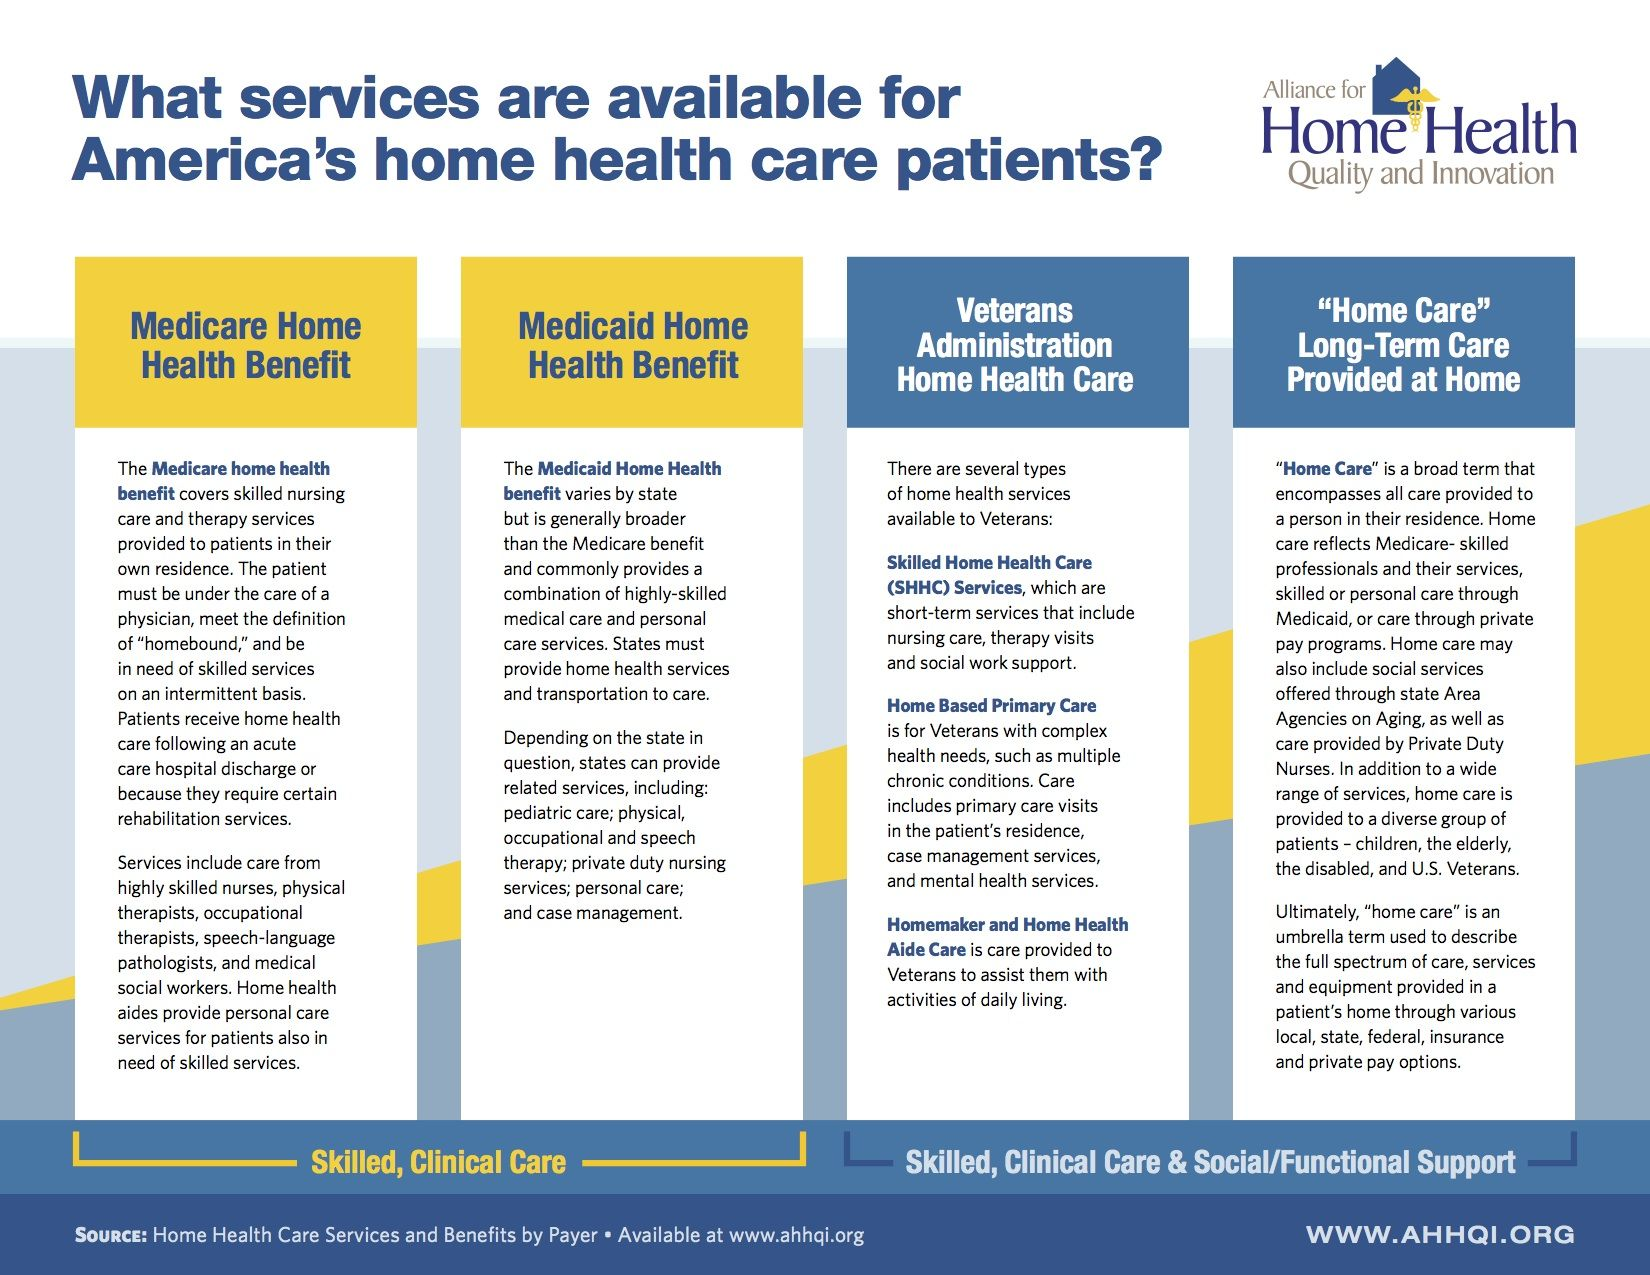 services available for america's home health care patients | about